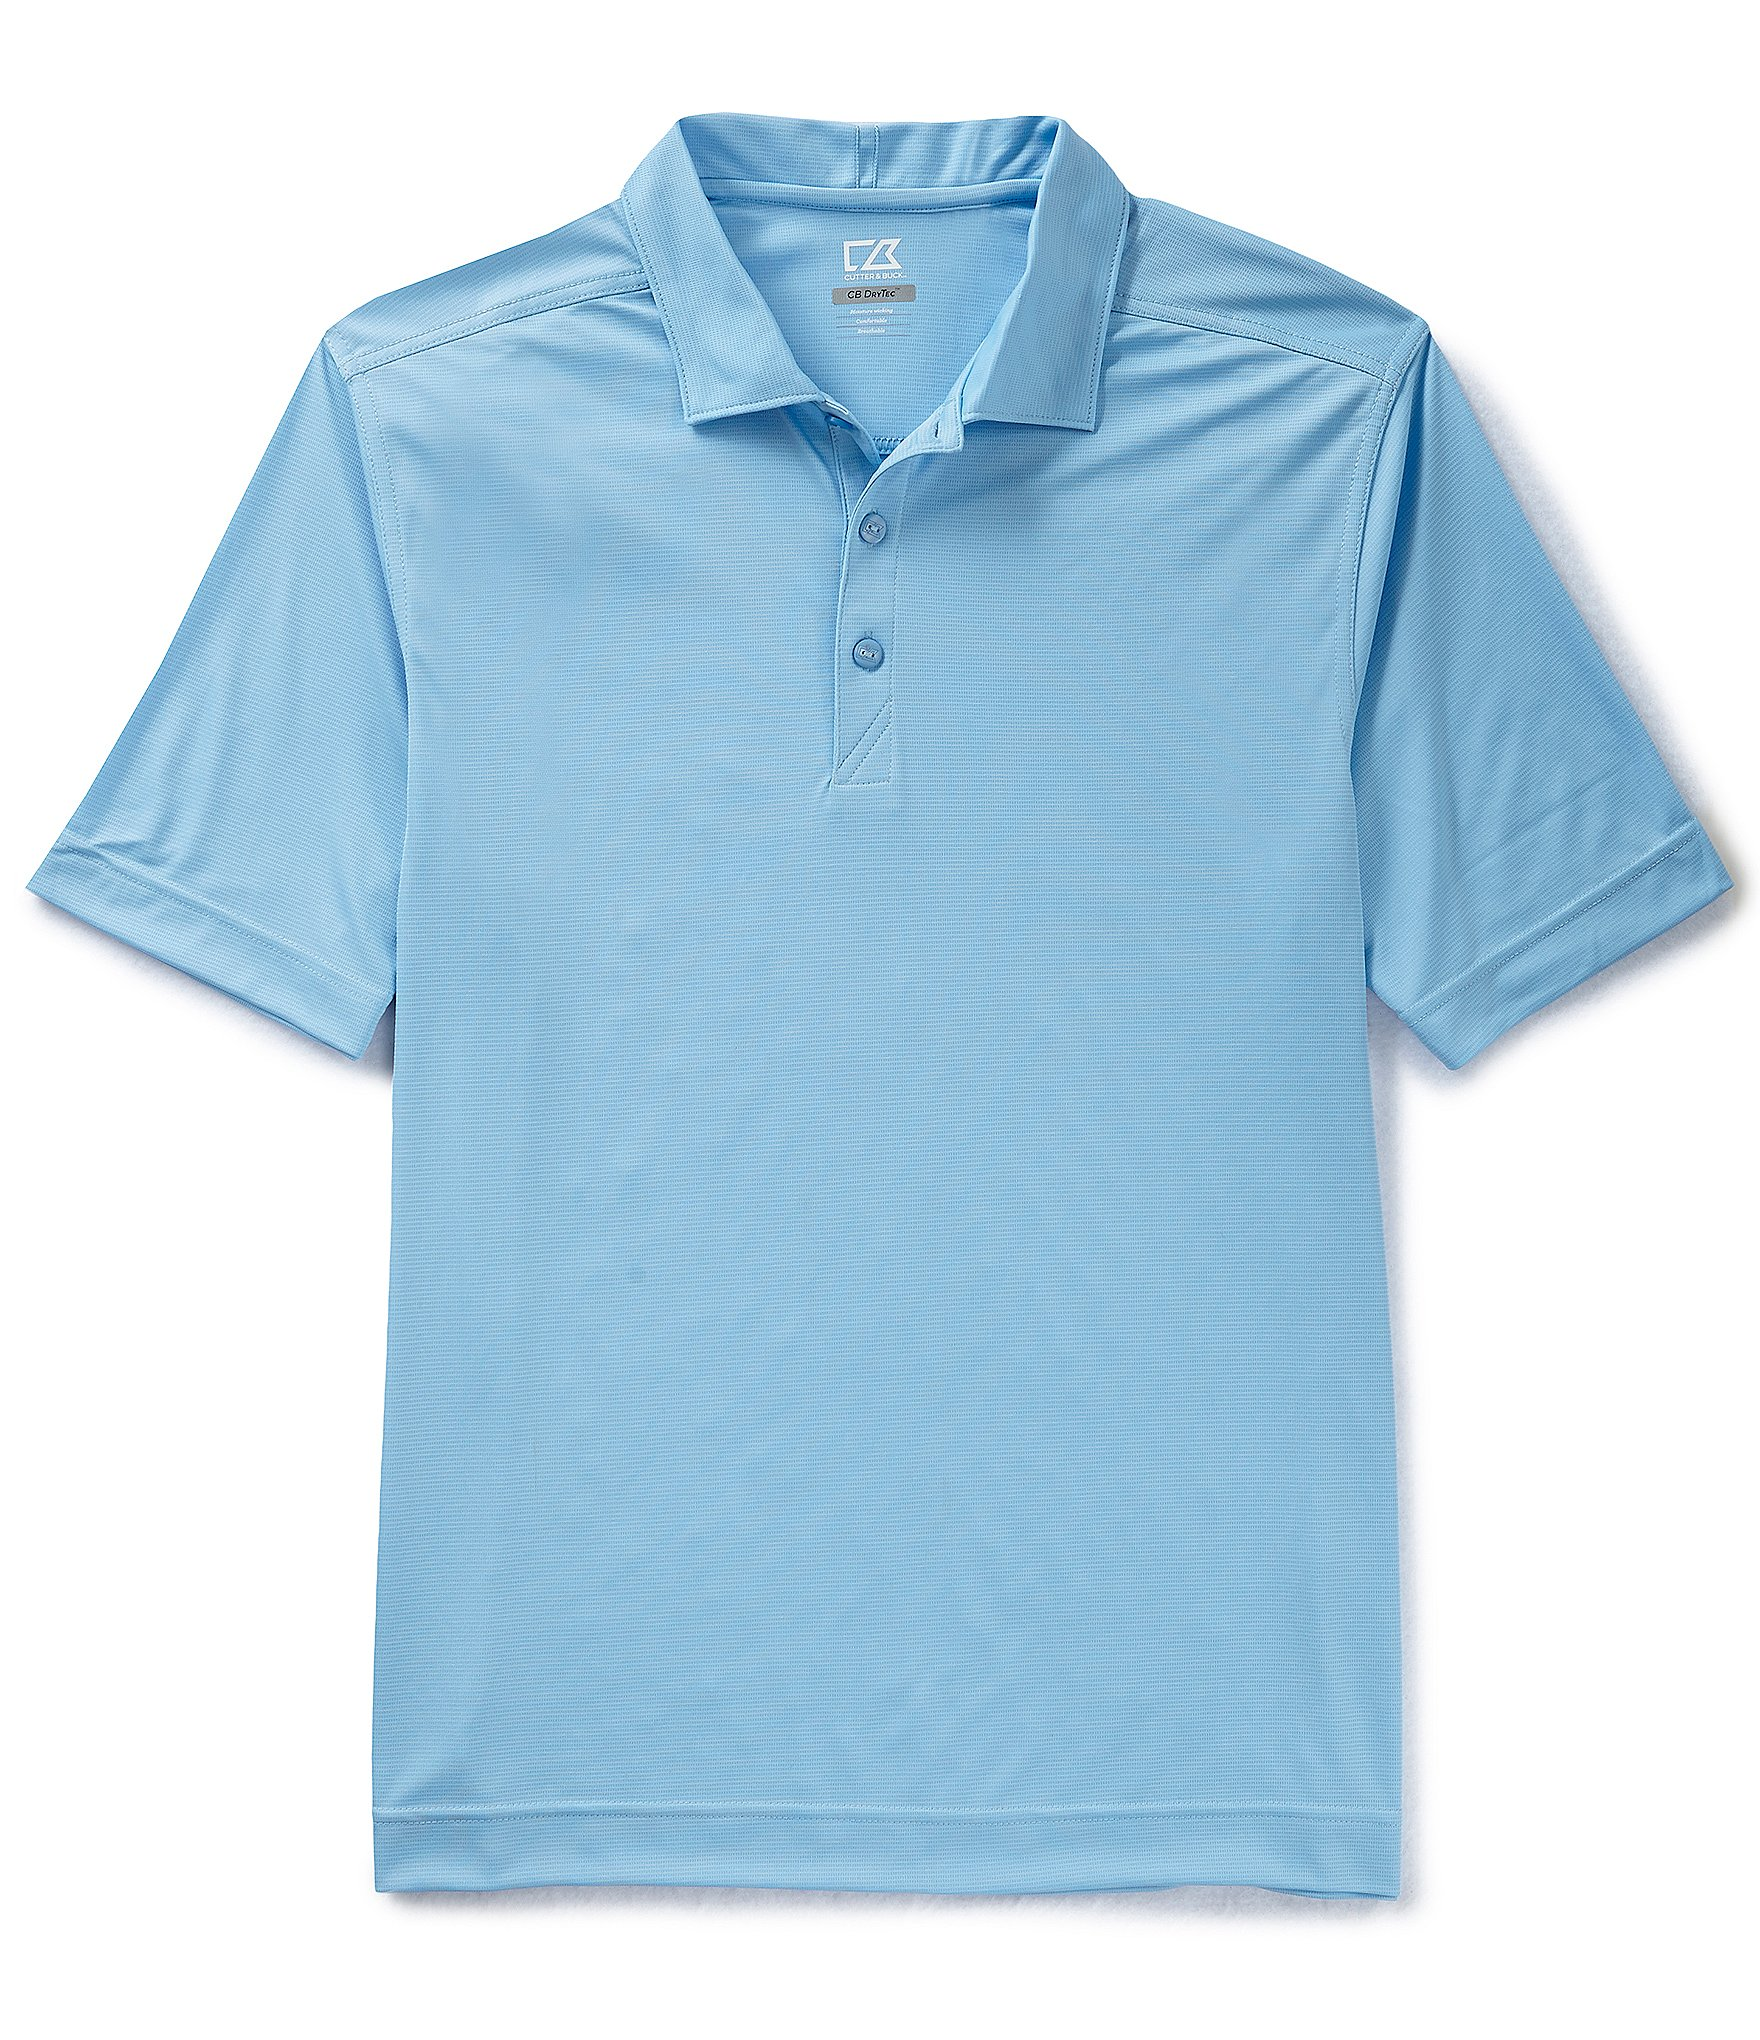 Cutter buck golf drytec northgate polo shirt dillards for Cutter buck polo shirt size chart